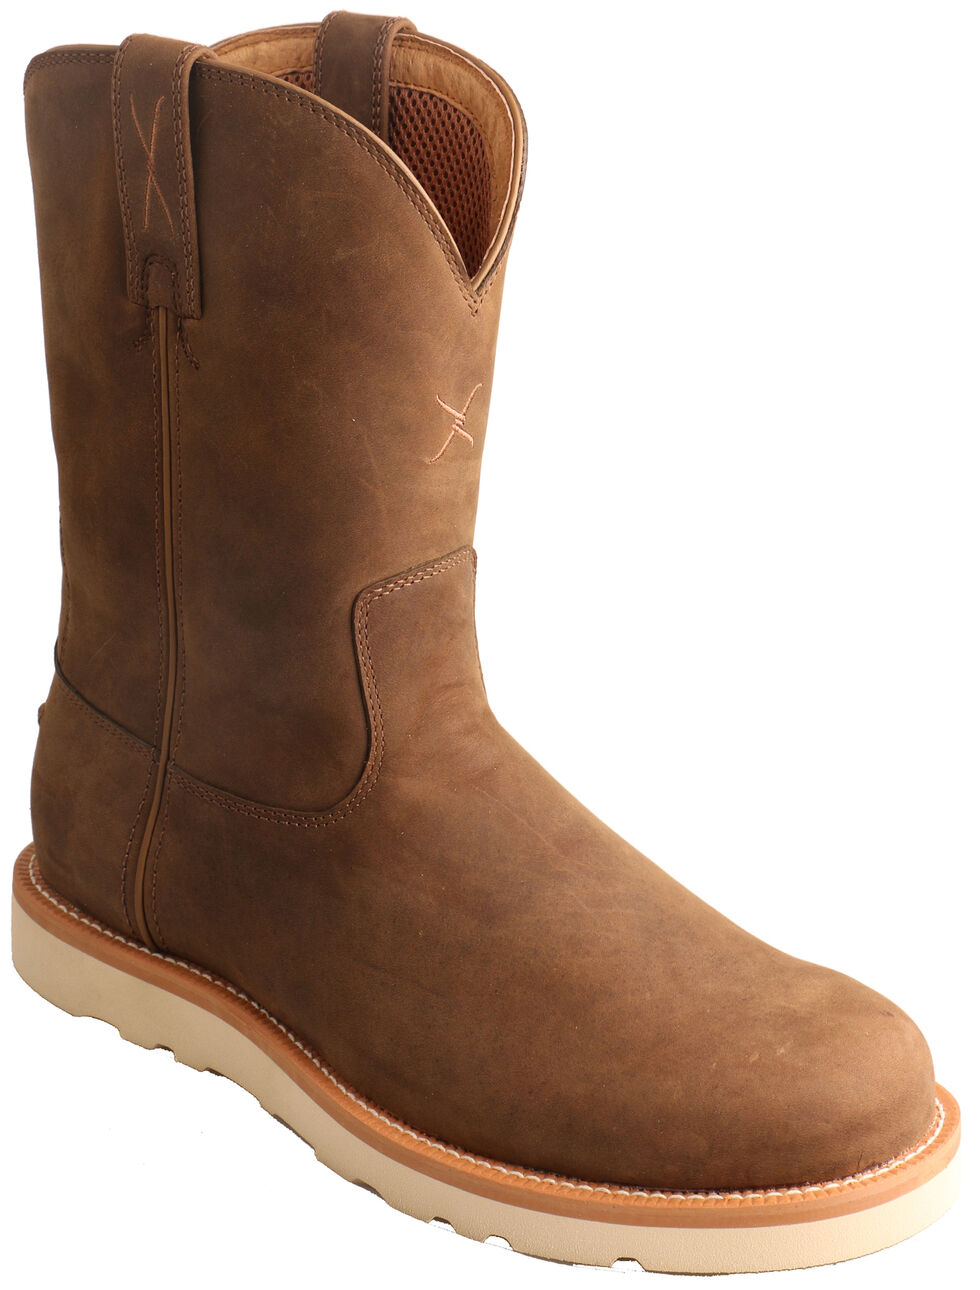 Twisted X Distressed Saddle Casual Boots - Round Toe , Brown, hi-res